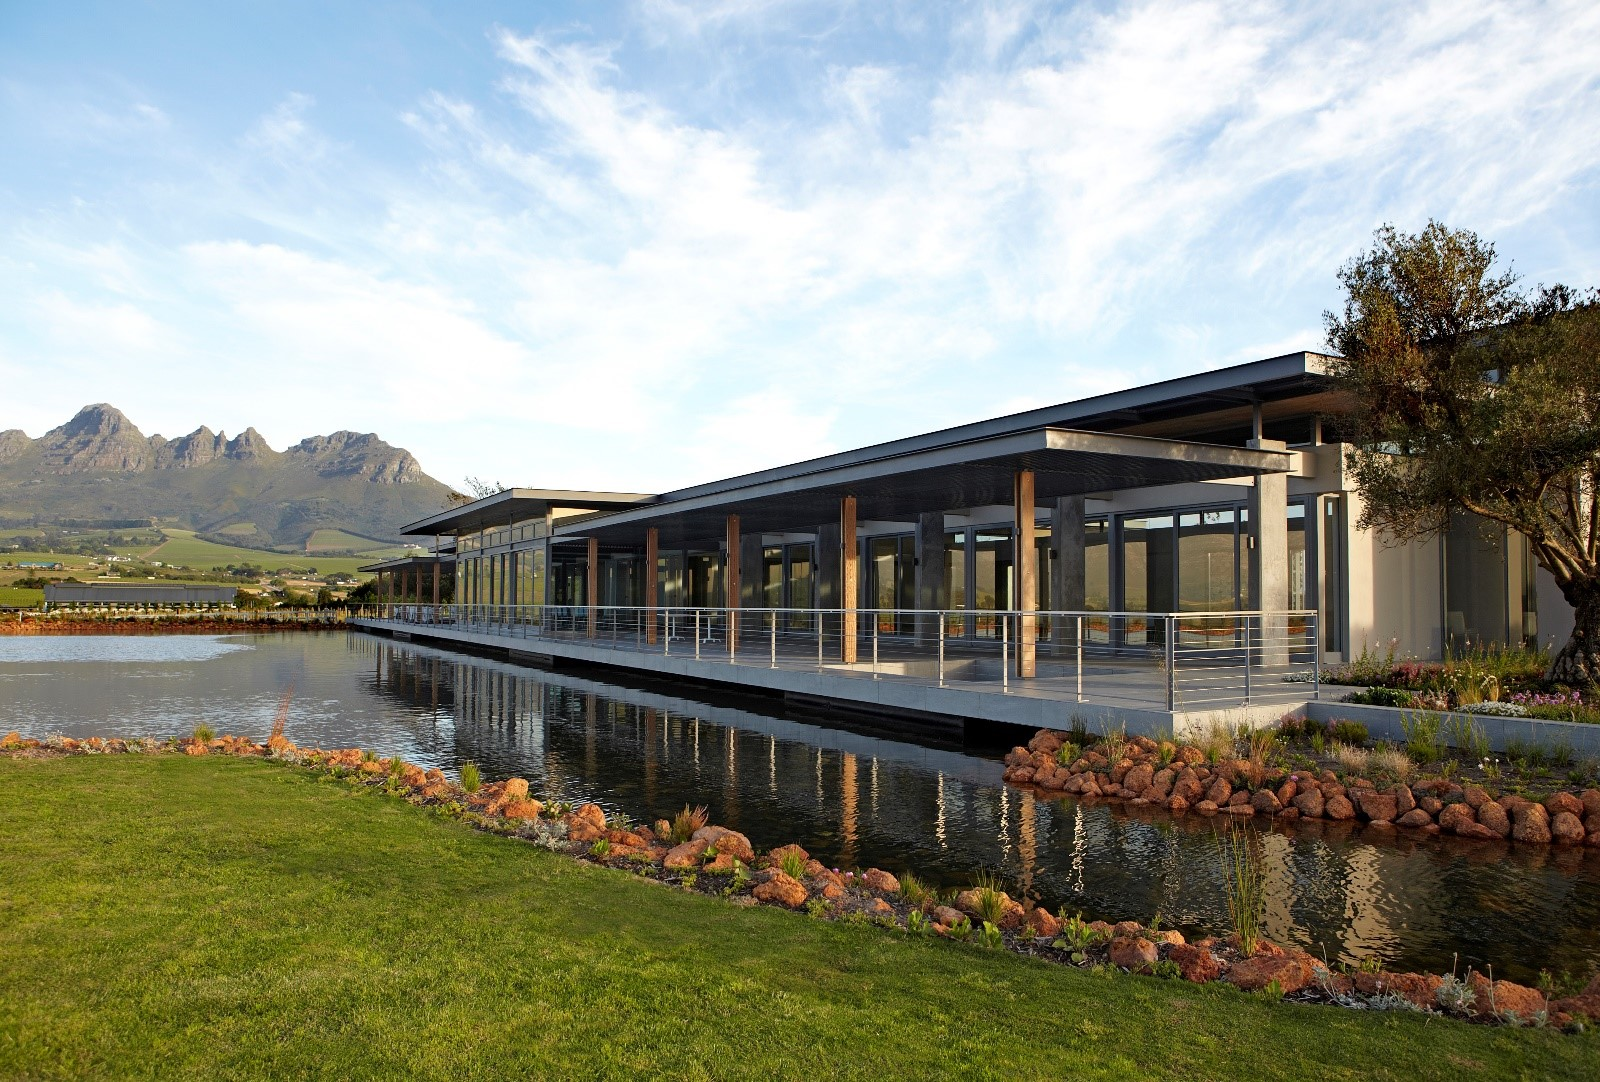 Cavalli vineyard Estate in Stellenbosch South Africa - exclusive holiday wine tasting tours by Luxur